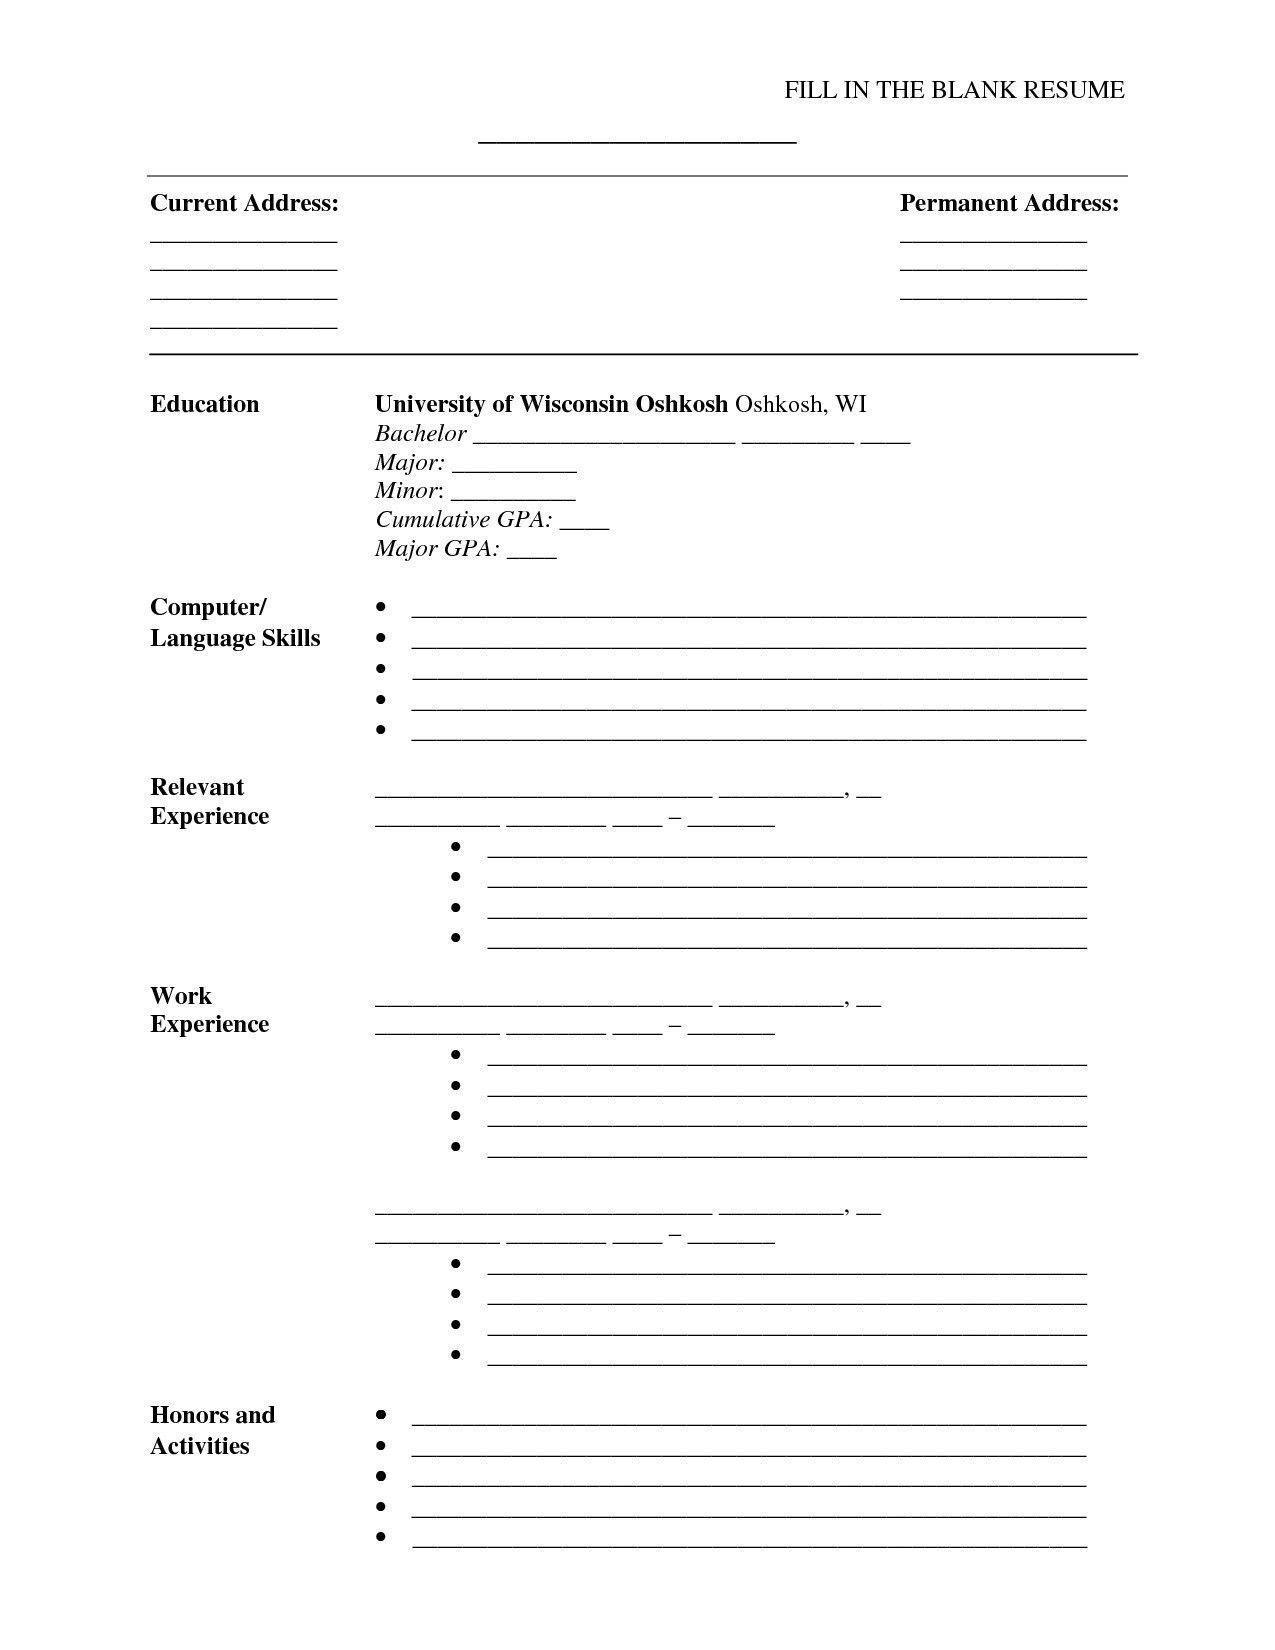 Blank Resume Template To Fill In Inspirational Awesome